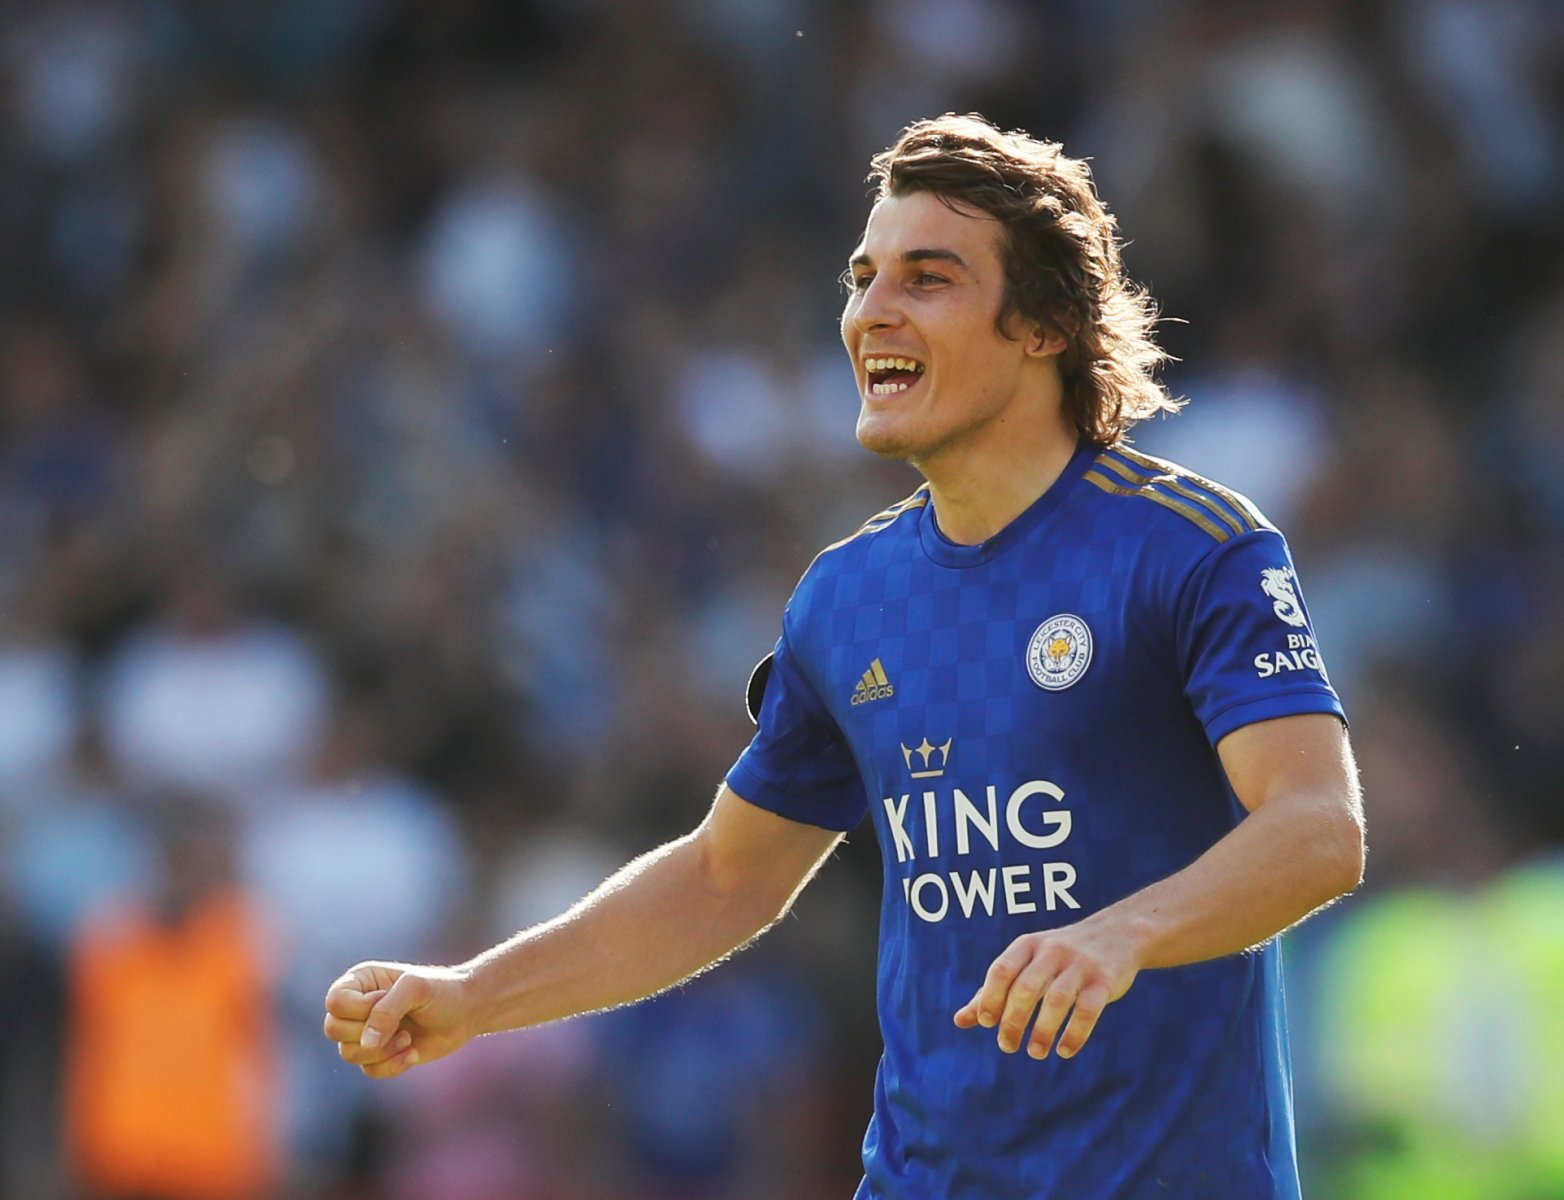 Leicester City: Fans think that Caglar Soyuncu has been their player of the season thus far